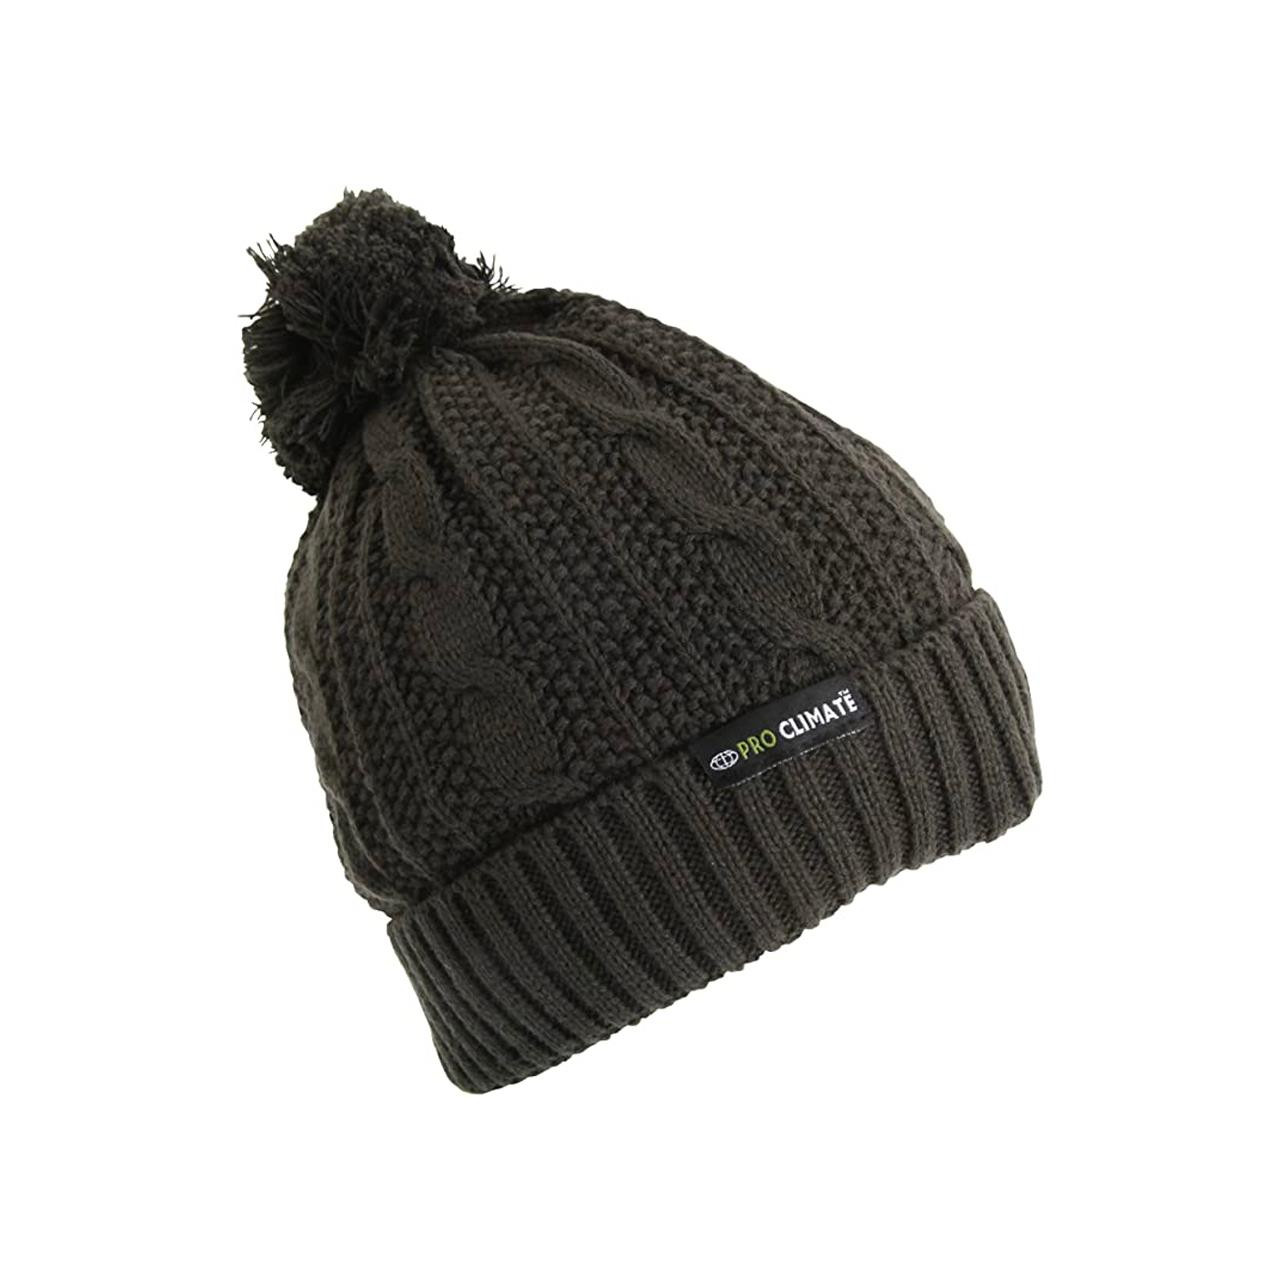 Pro Climate Waterproof Thinsulate Chunky Knit Bobble Hat (Olive)